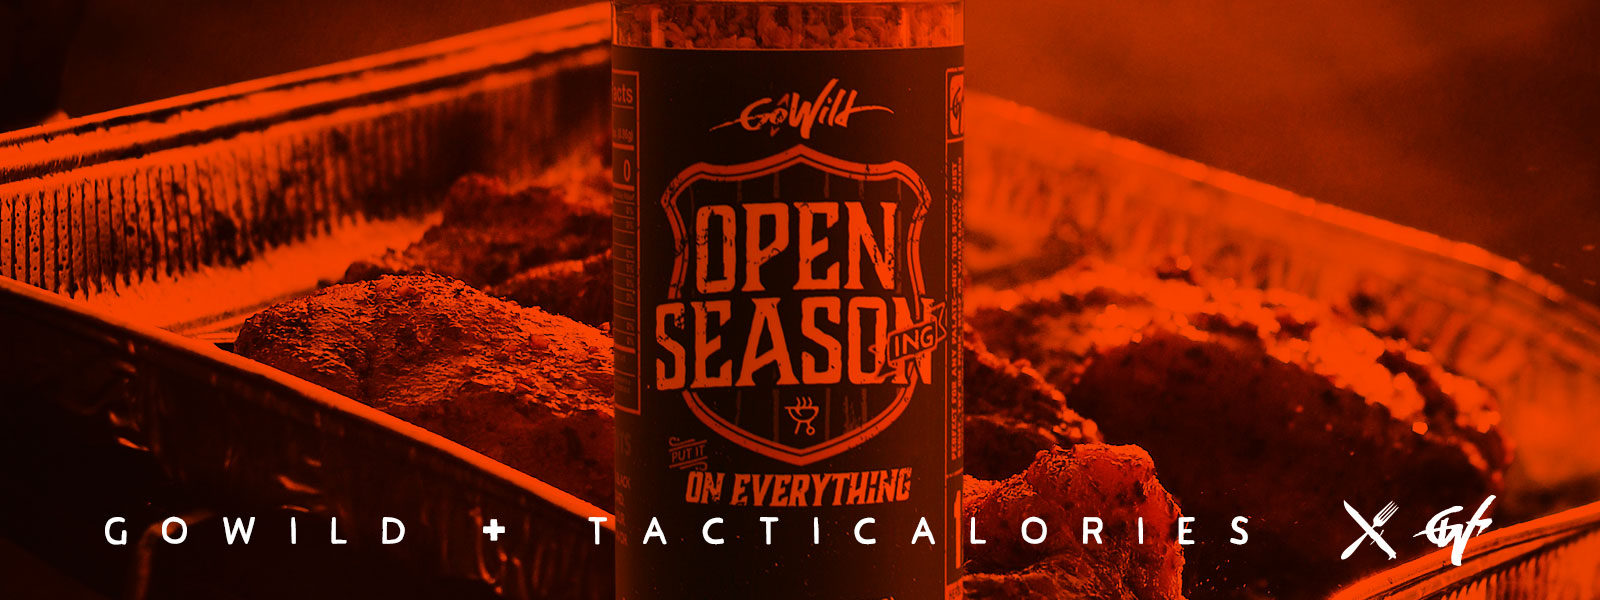 GoWild Launches Wild Game Seasoning,  in Partnership with Tacticalories Seasoning Co.